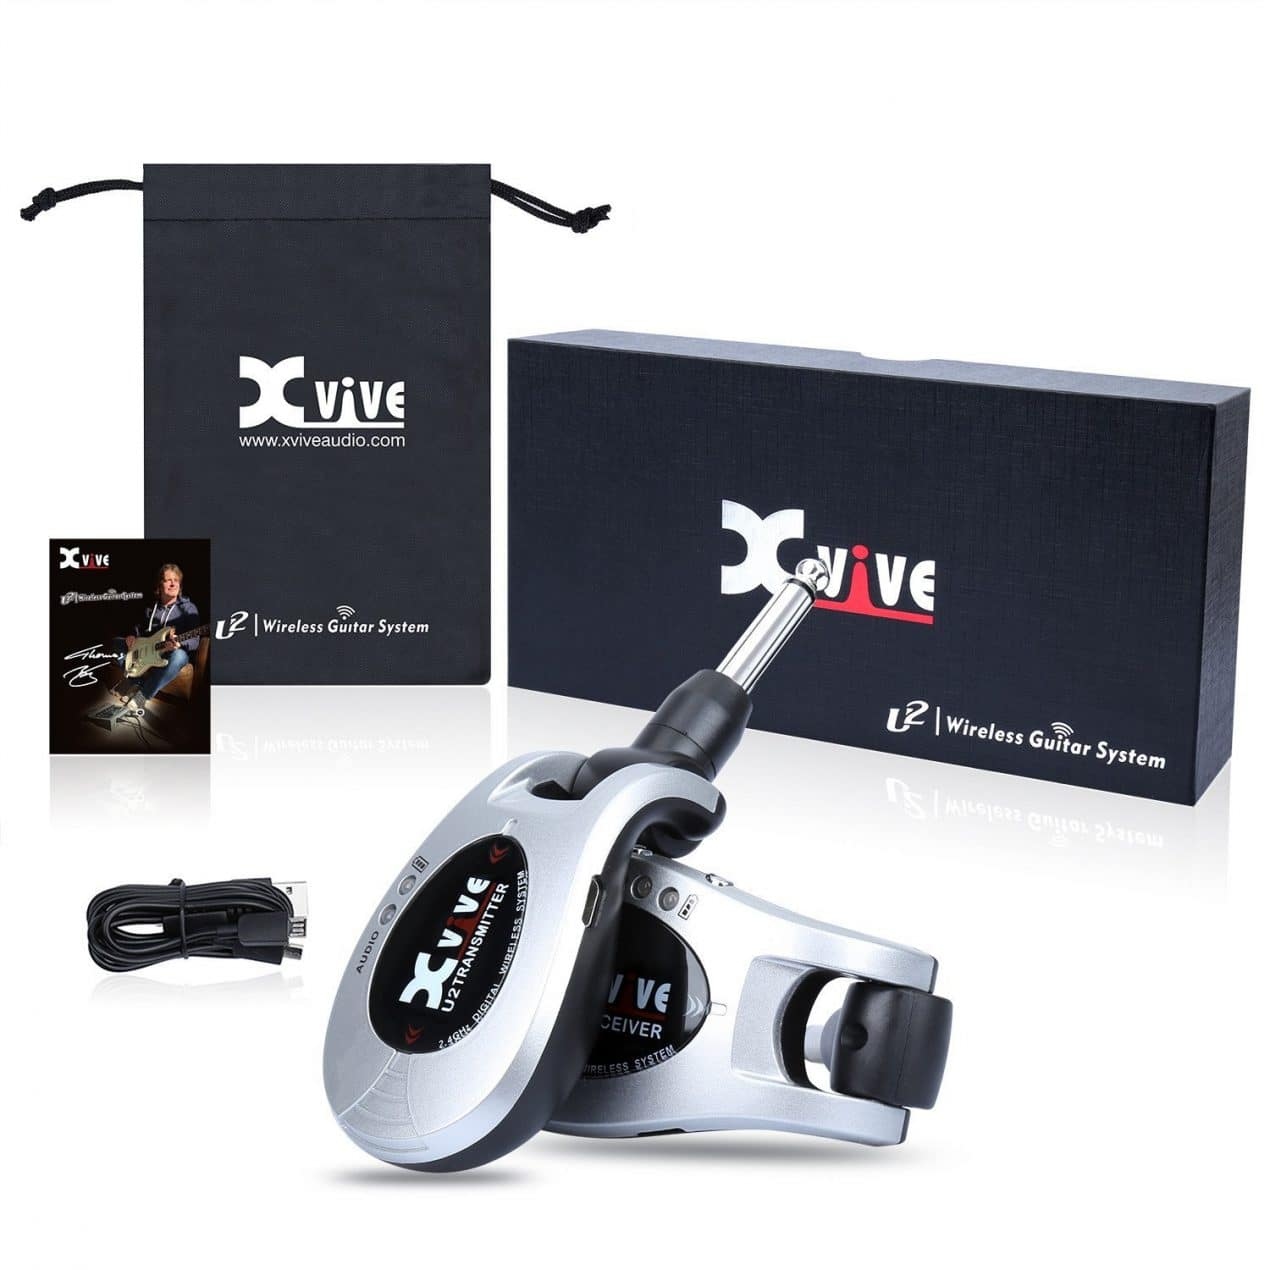 Xvive U2 Wireless Guitar System Review